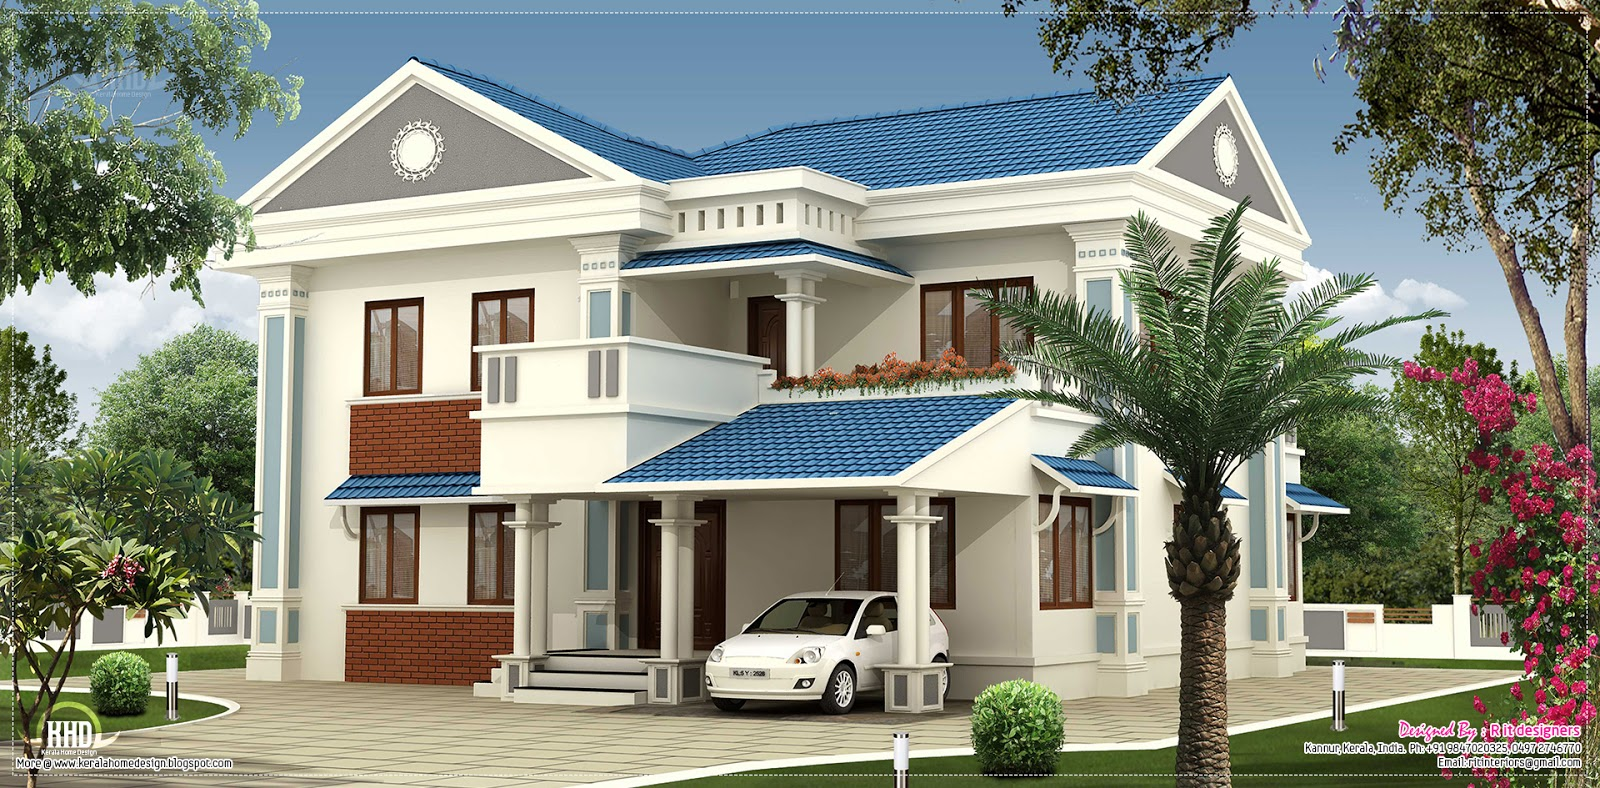 2000 sq.feet Beautiful villa elevation design | Home ...